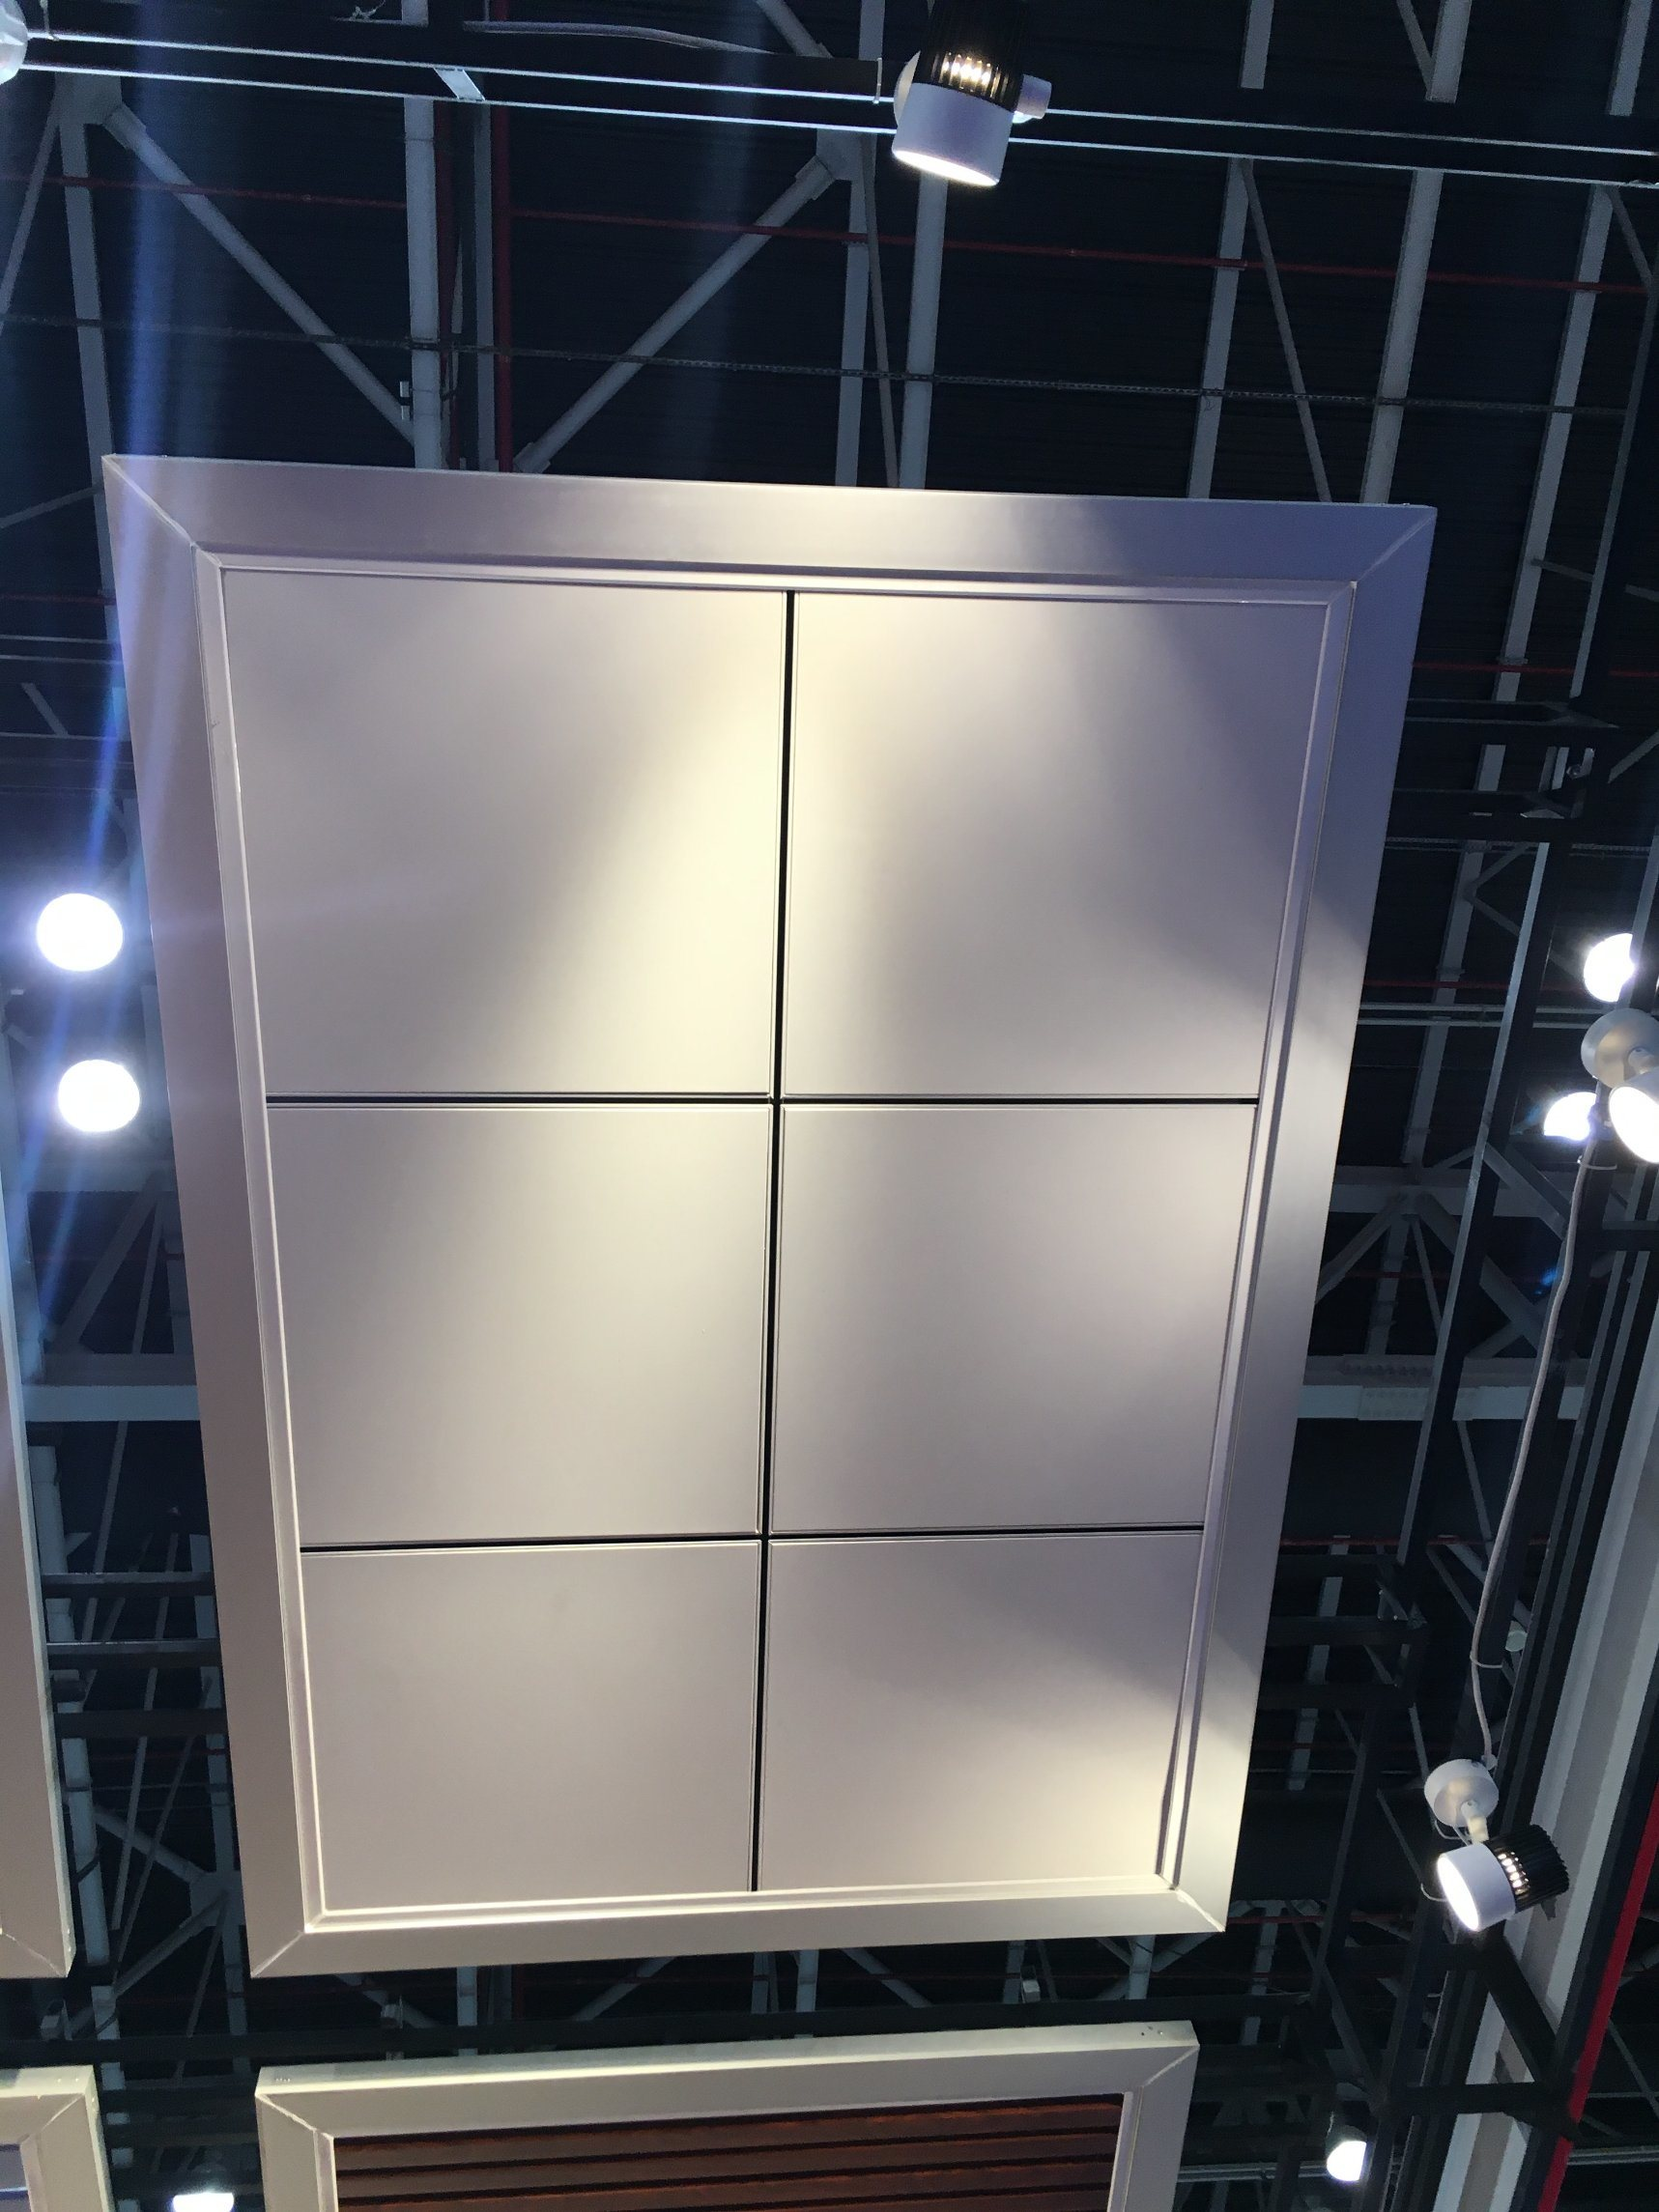 Metal Ceiling Aluminum Powder Coated Lay-in Ceiling Panel Suspened Ceiling Match T-Grid